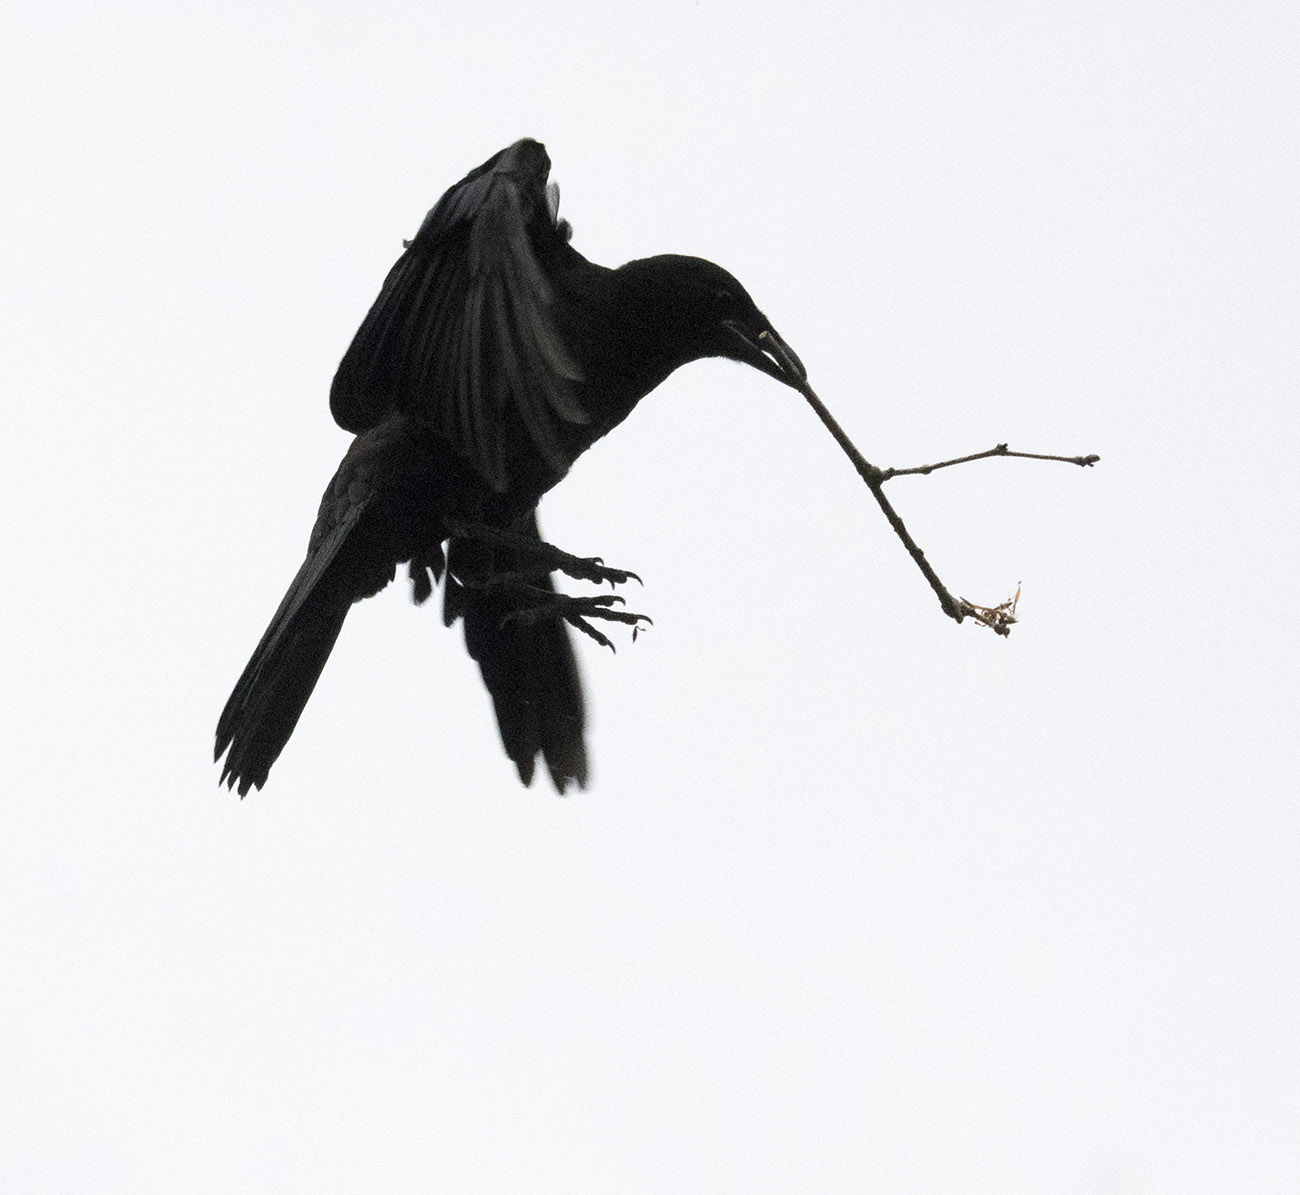 Baby Crow Flies with Twig